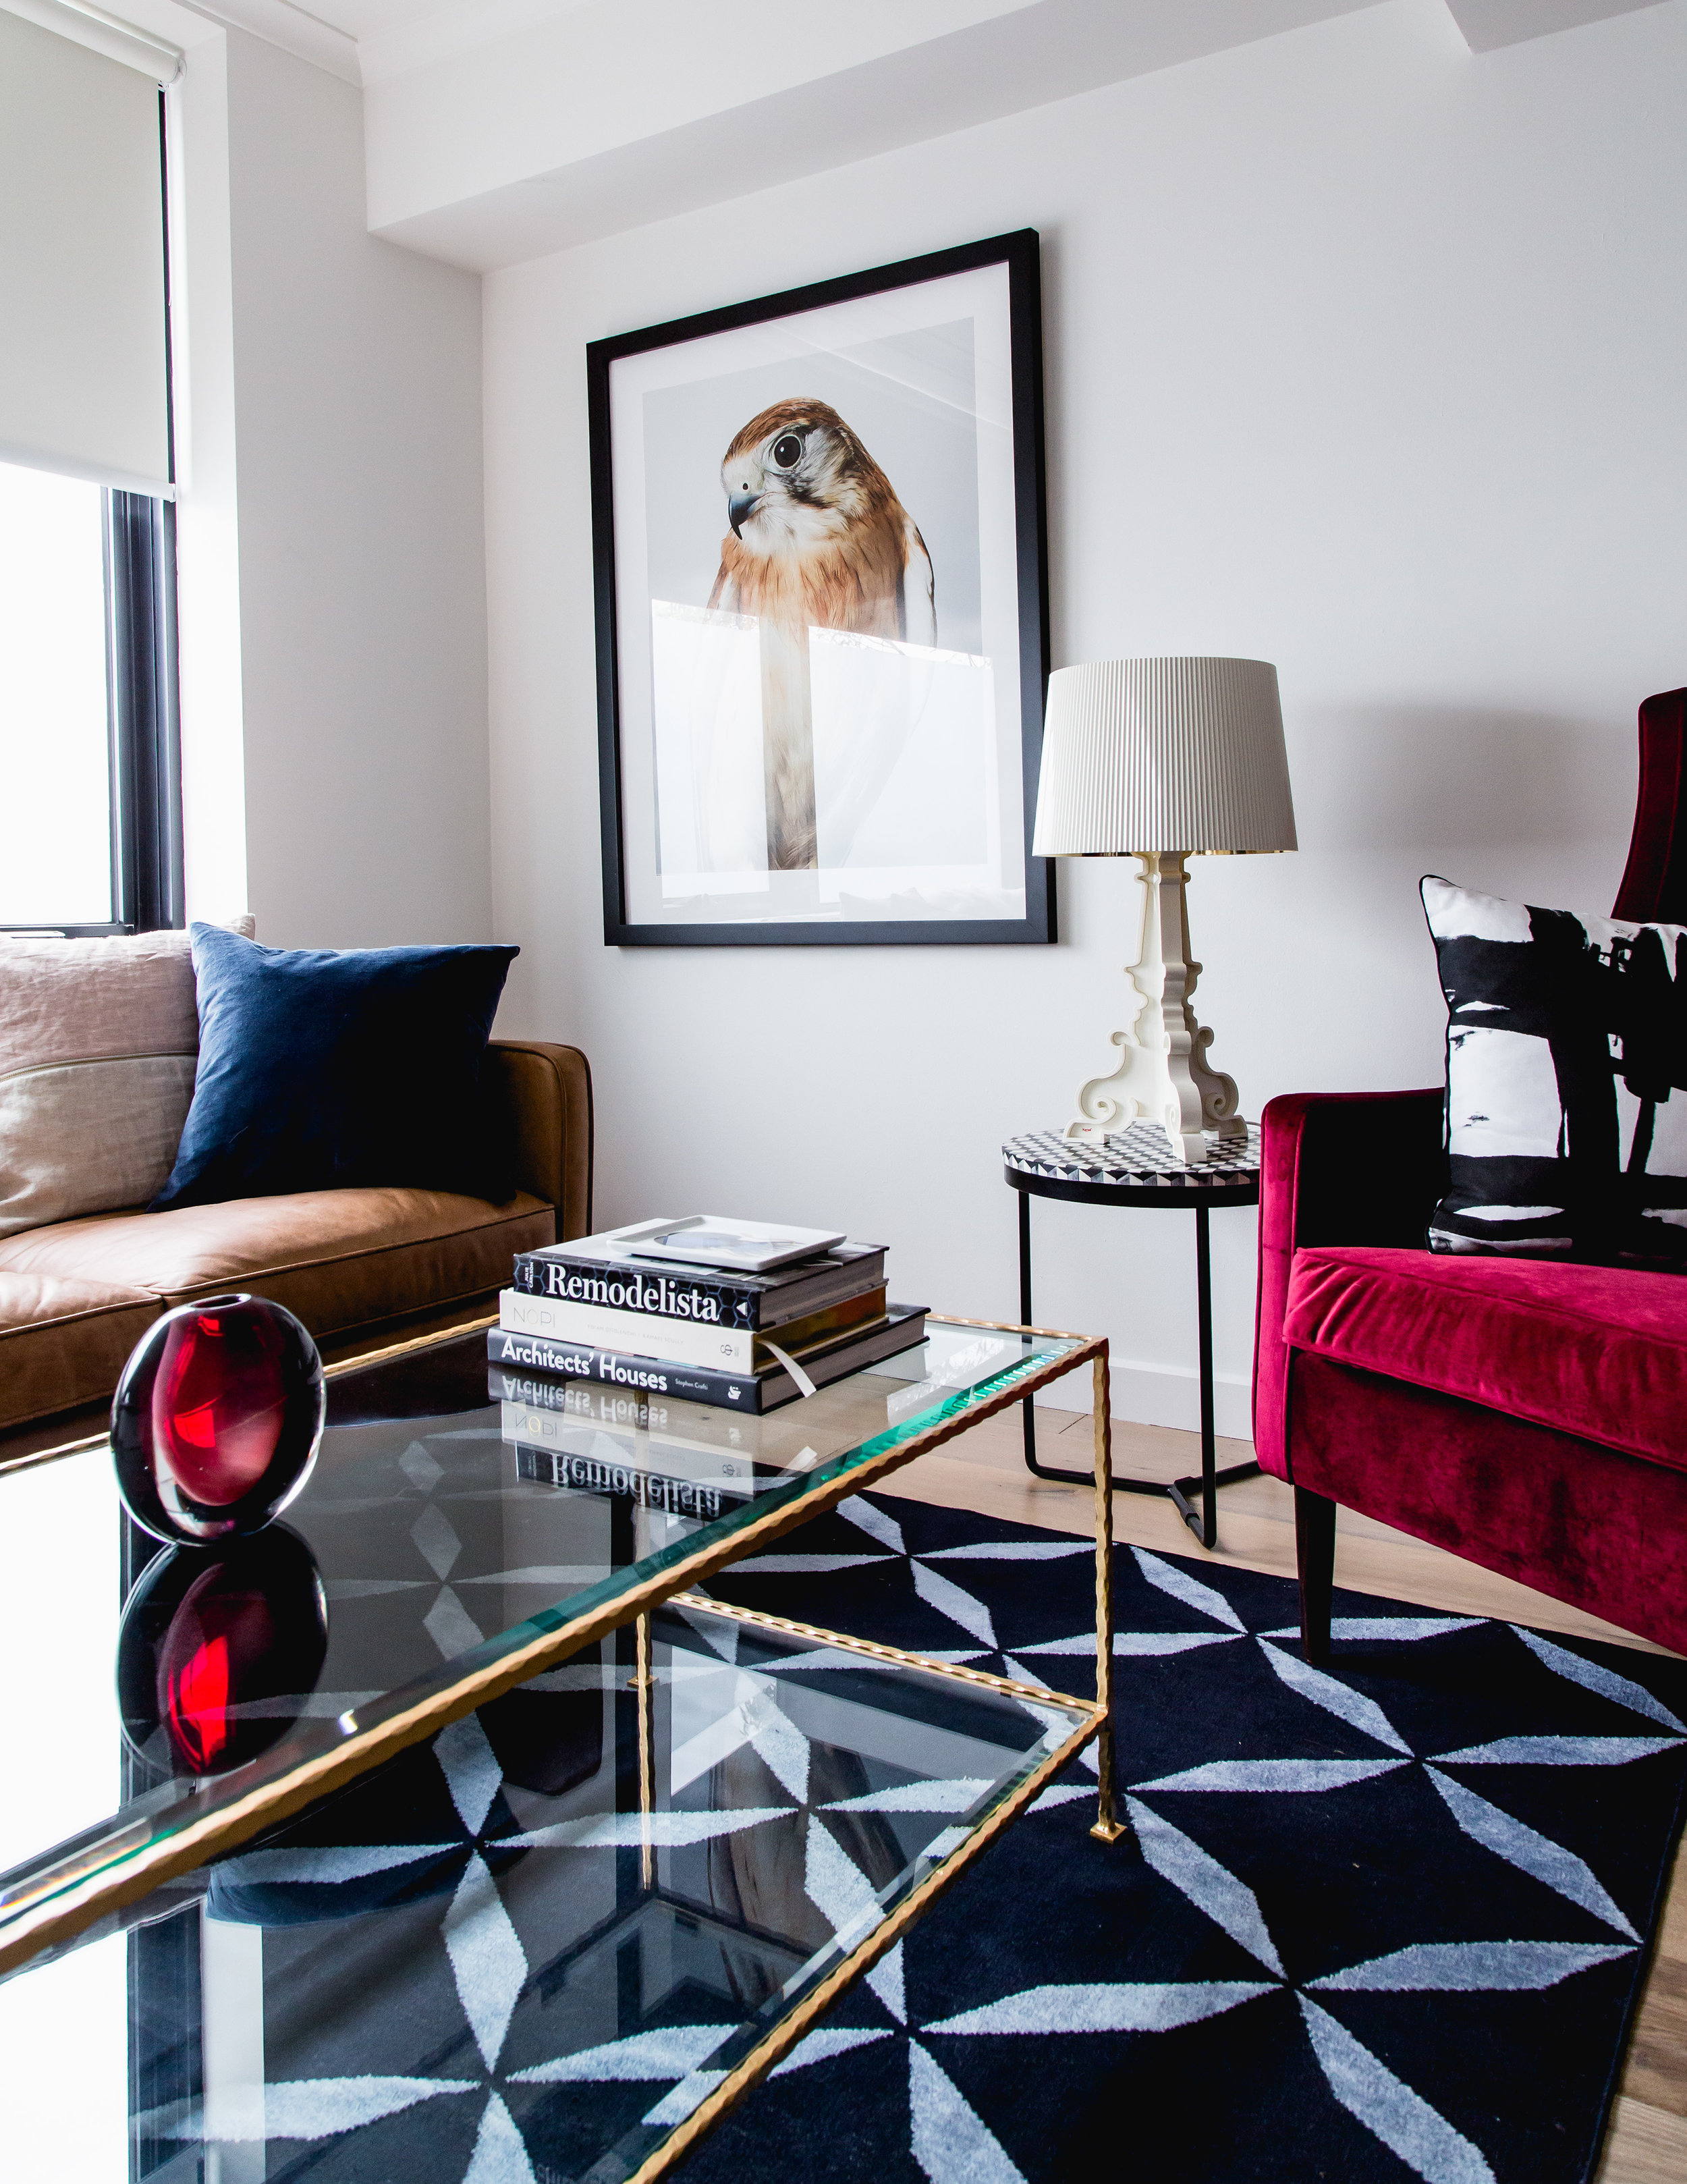 Styling by The Den Interiors / Style assist by Bea + Co